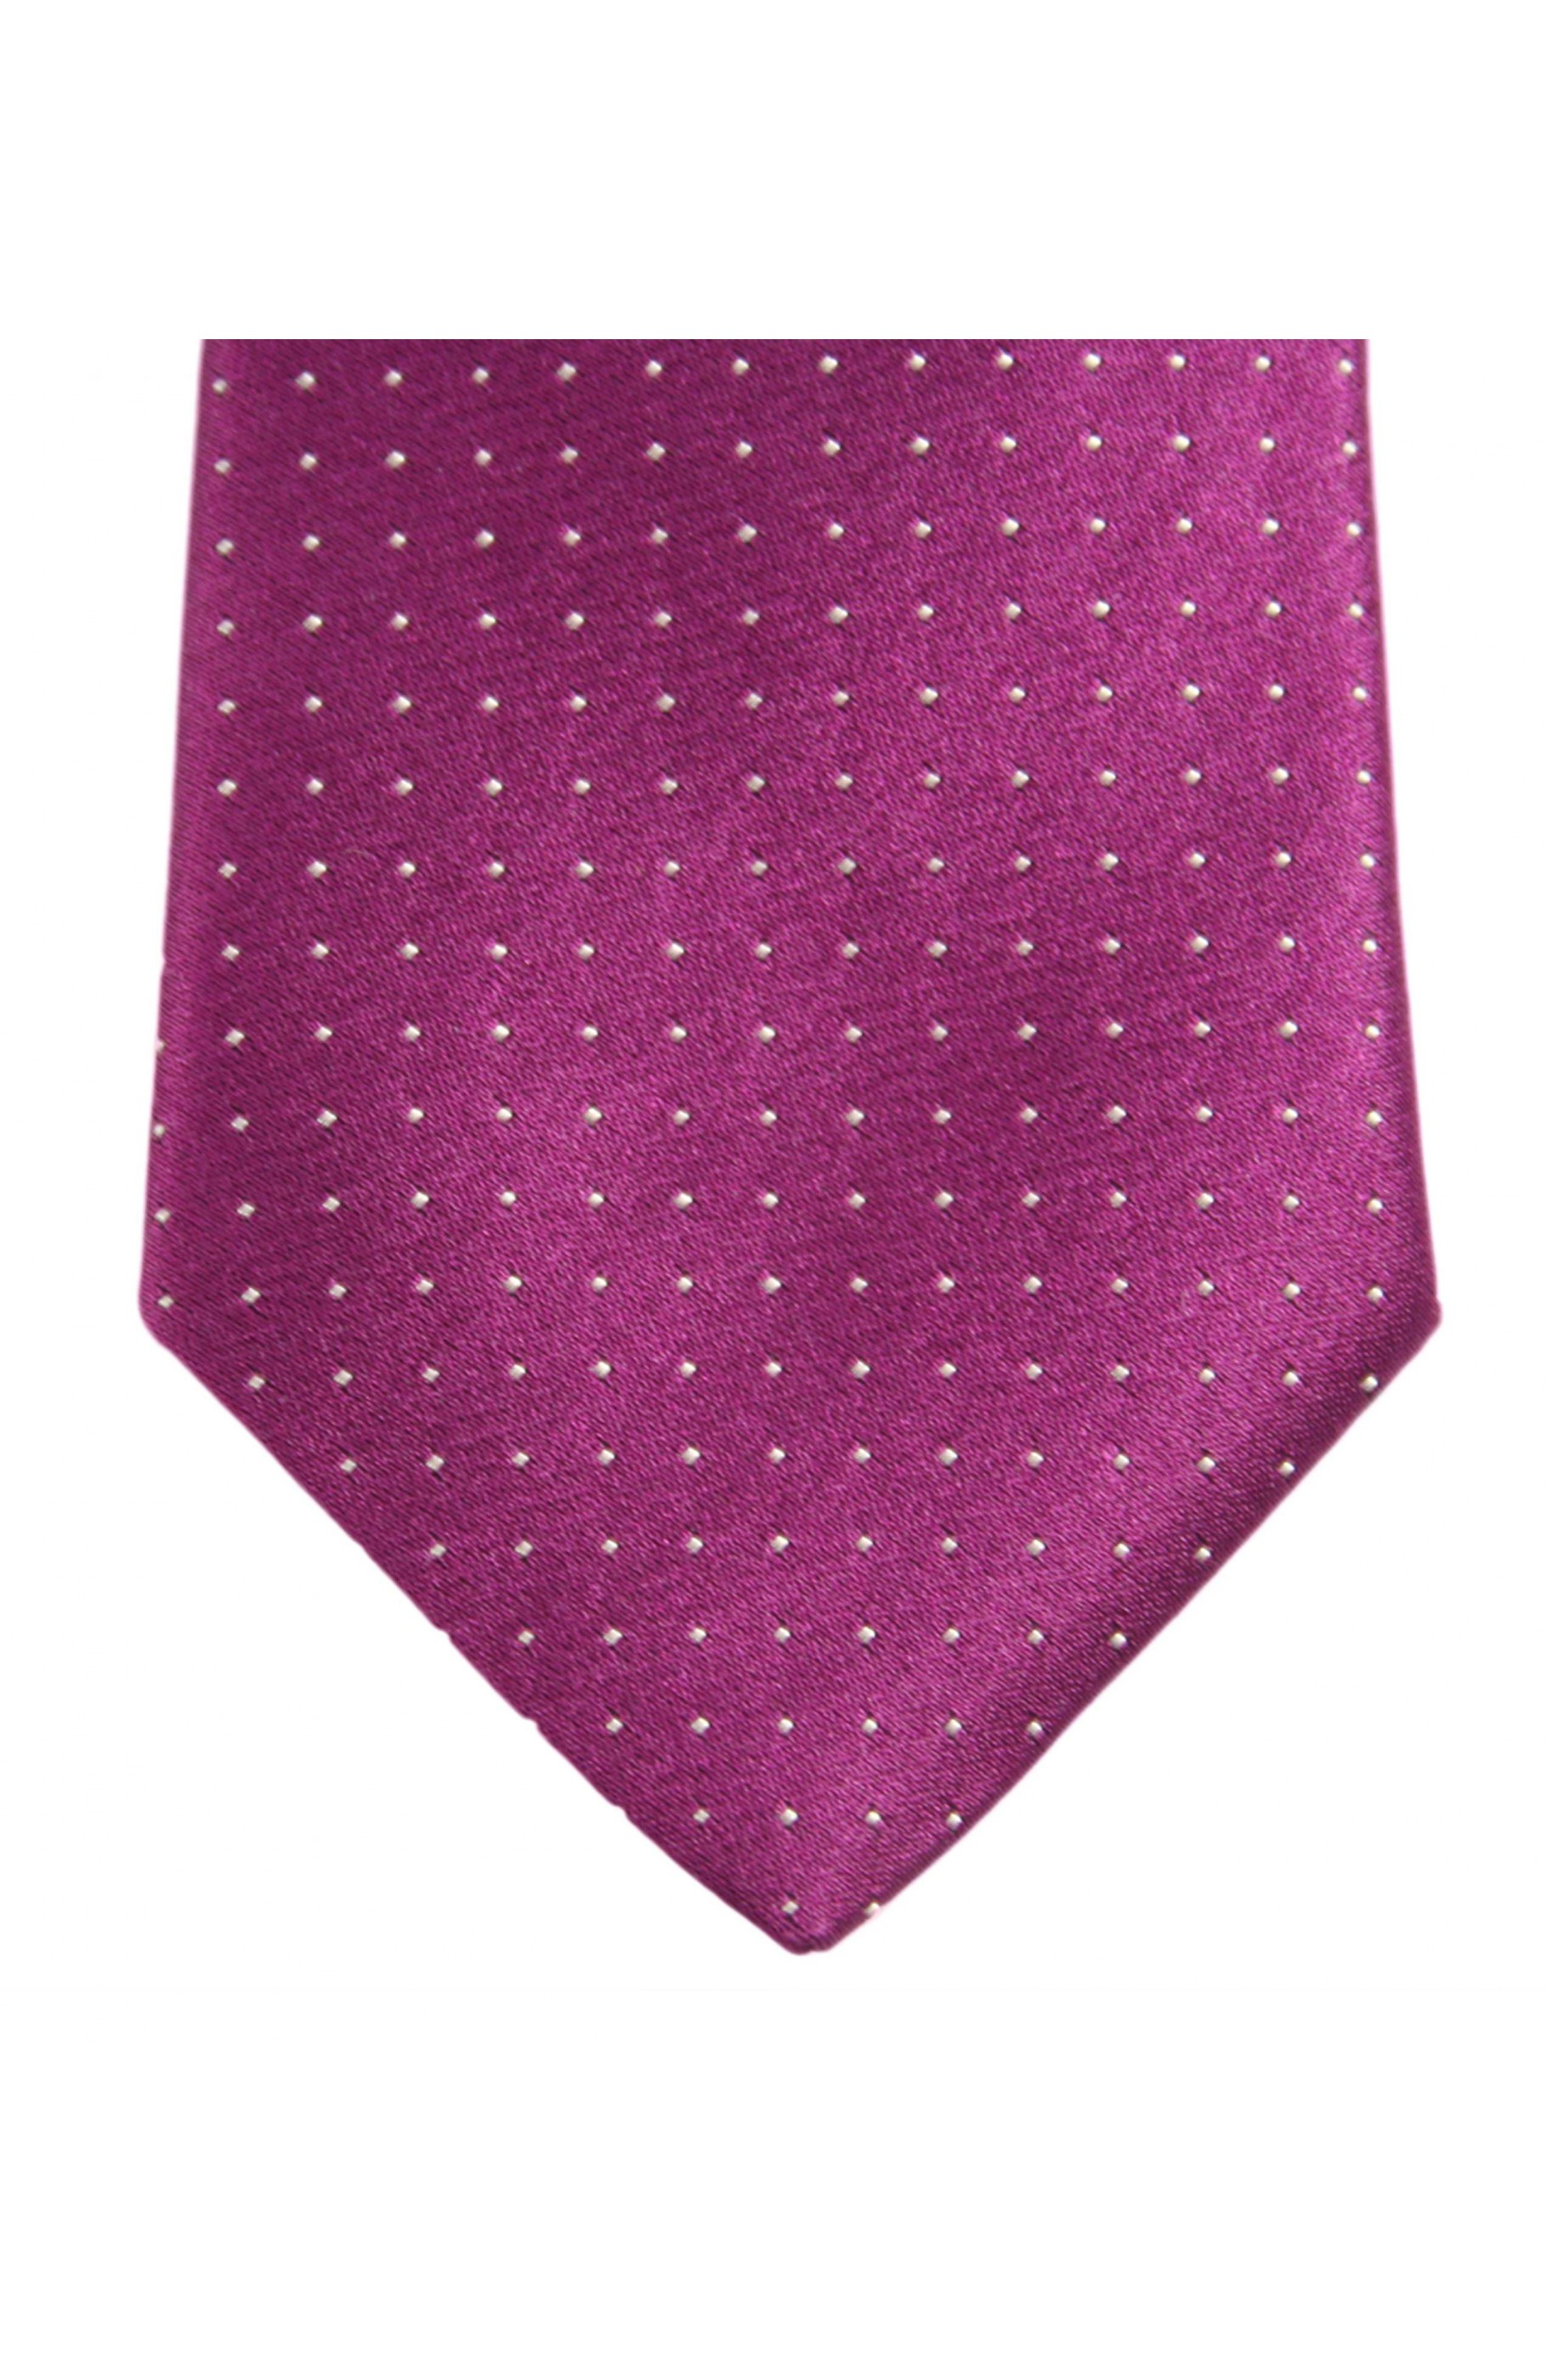 Majesté Couture Paris: Fuchsia tie with white dots | Accessories -  Hiphunters Shop